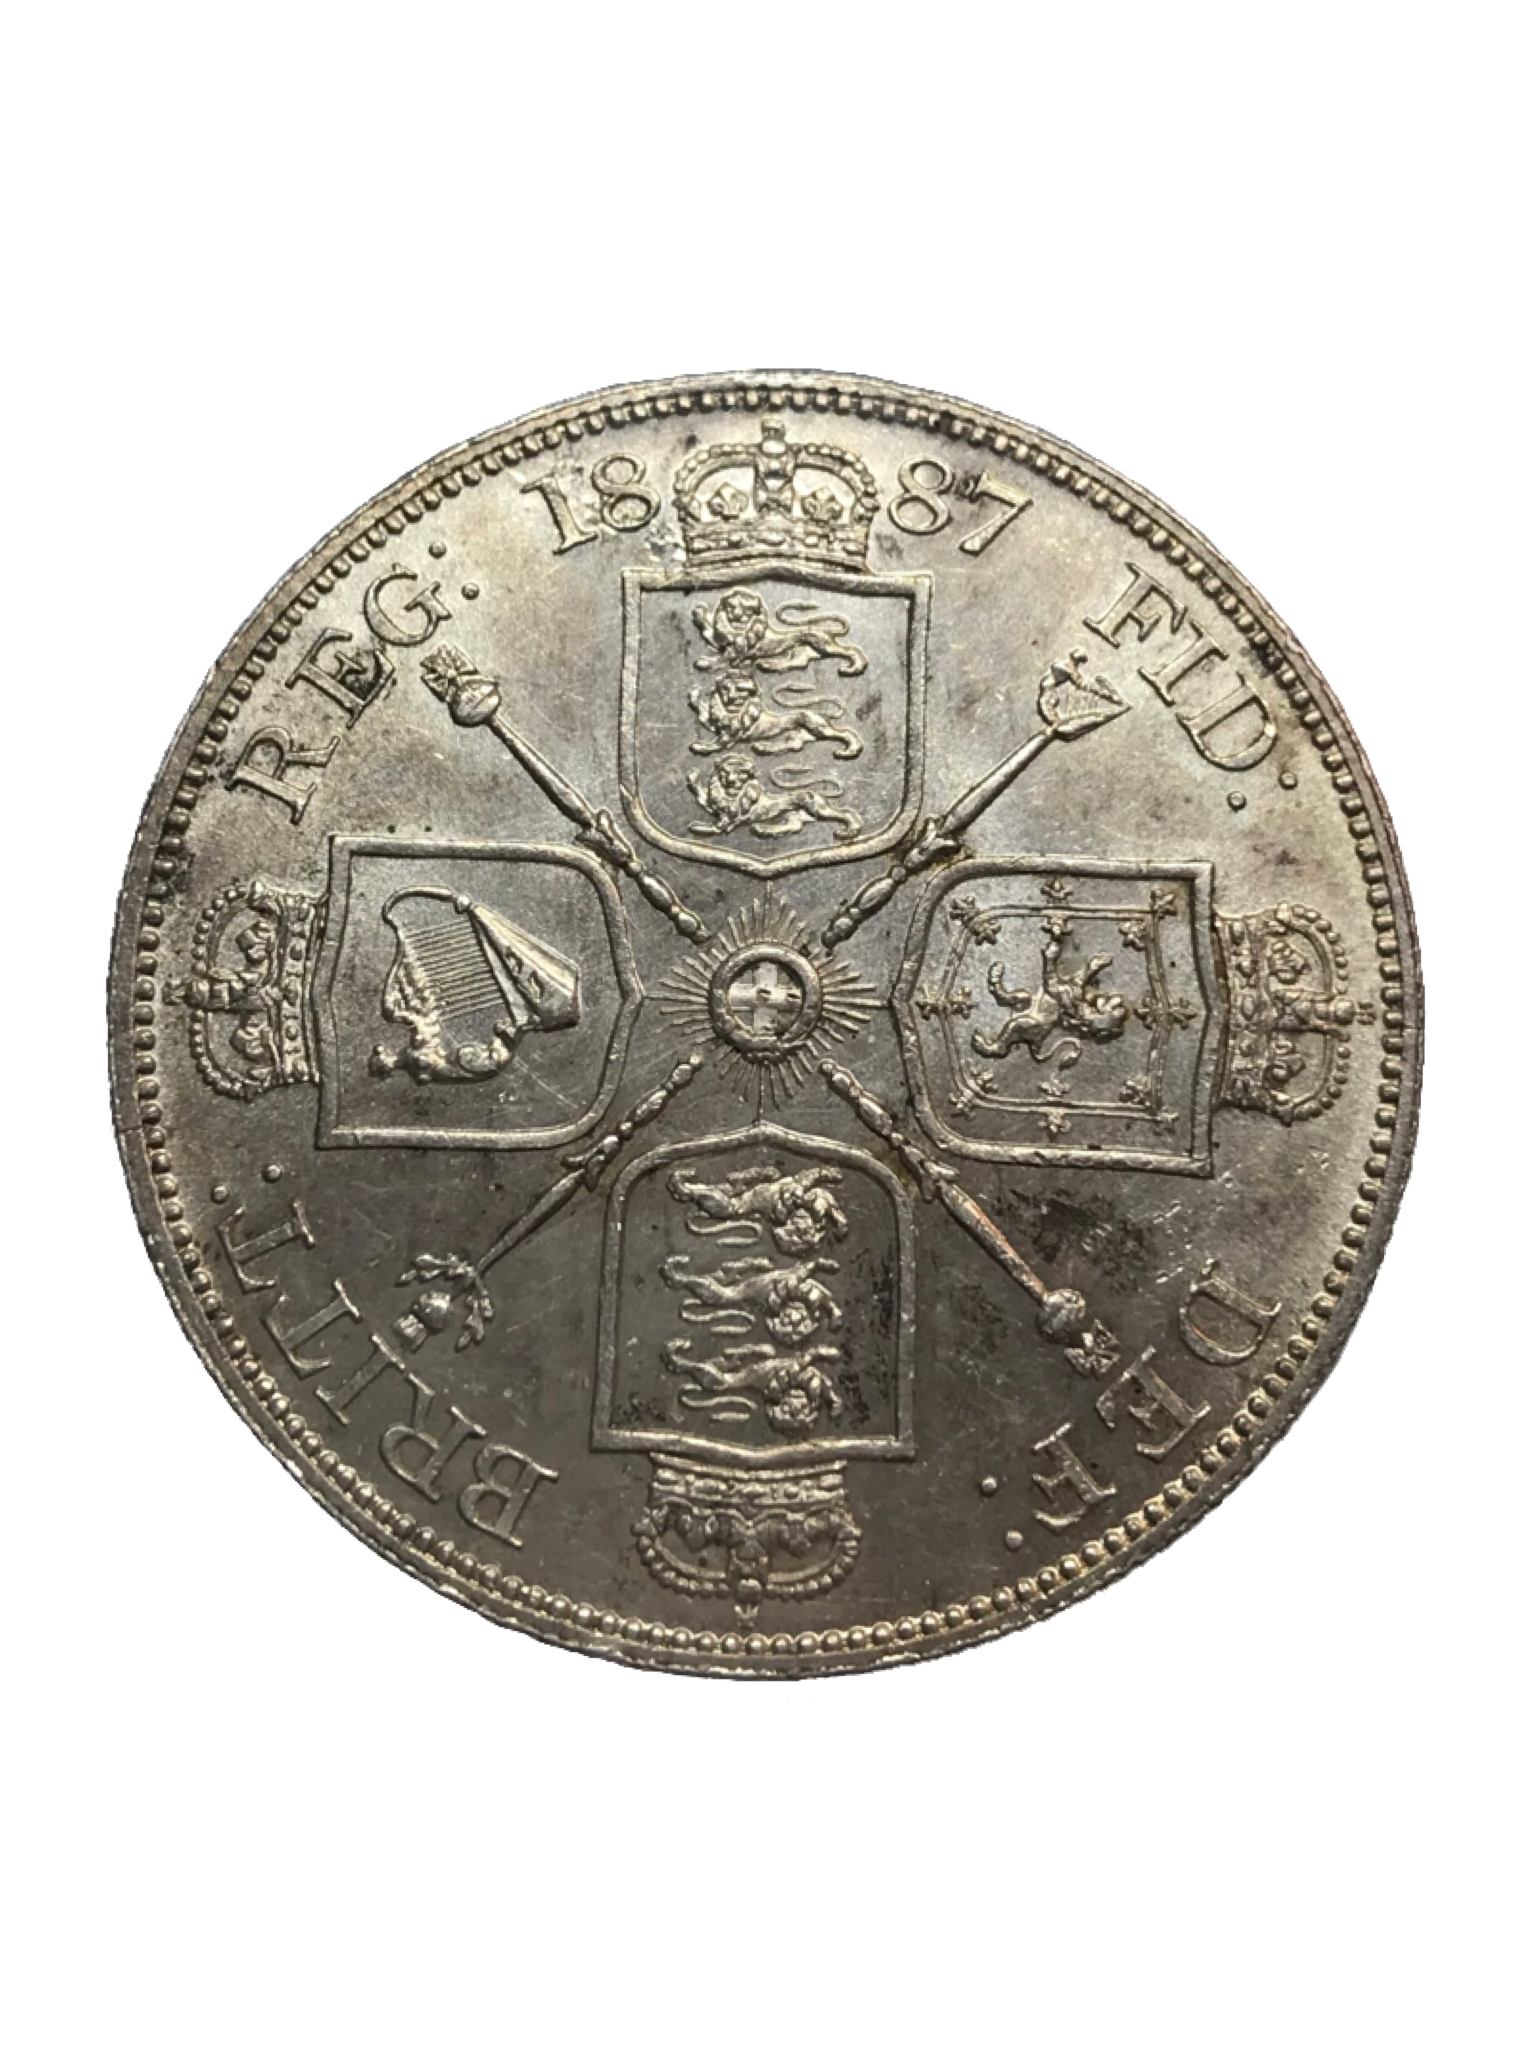 1887 Queen Victoria Double Florin